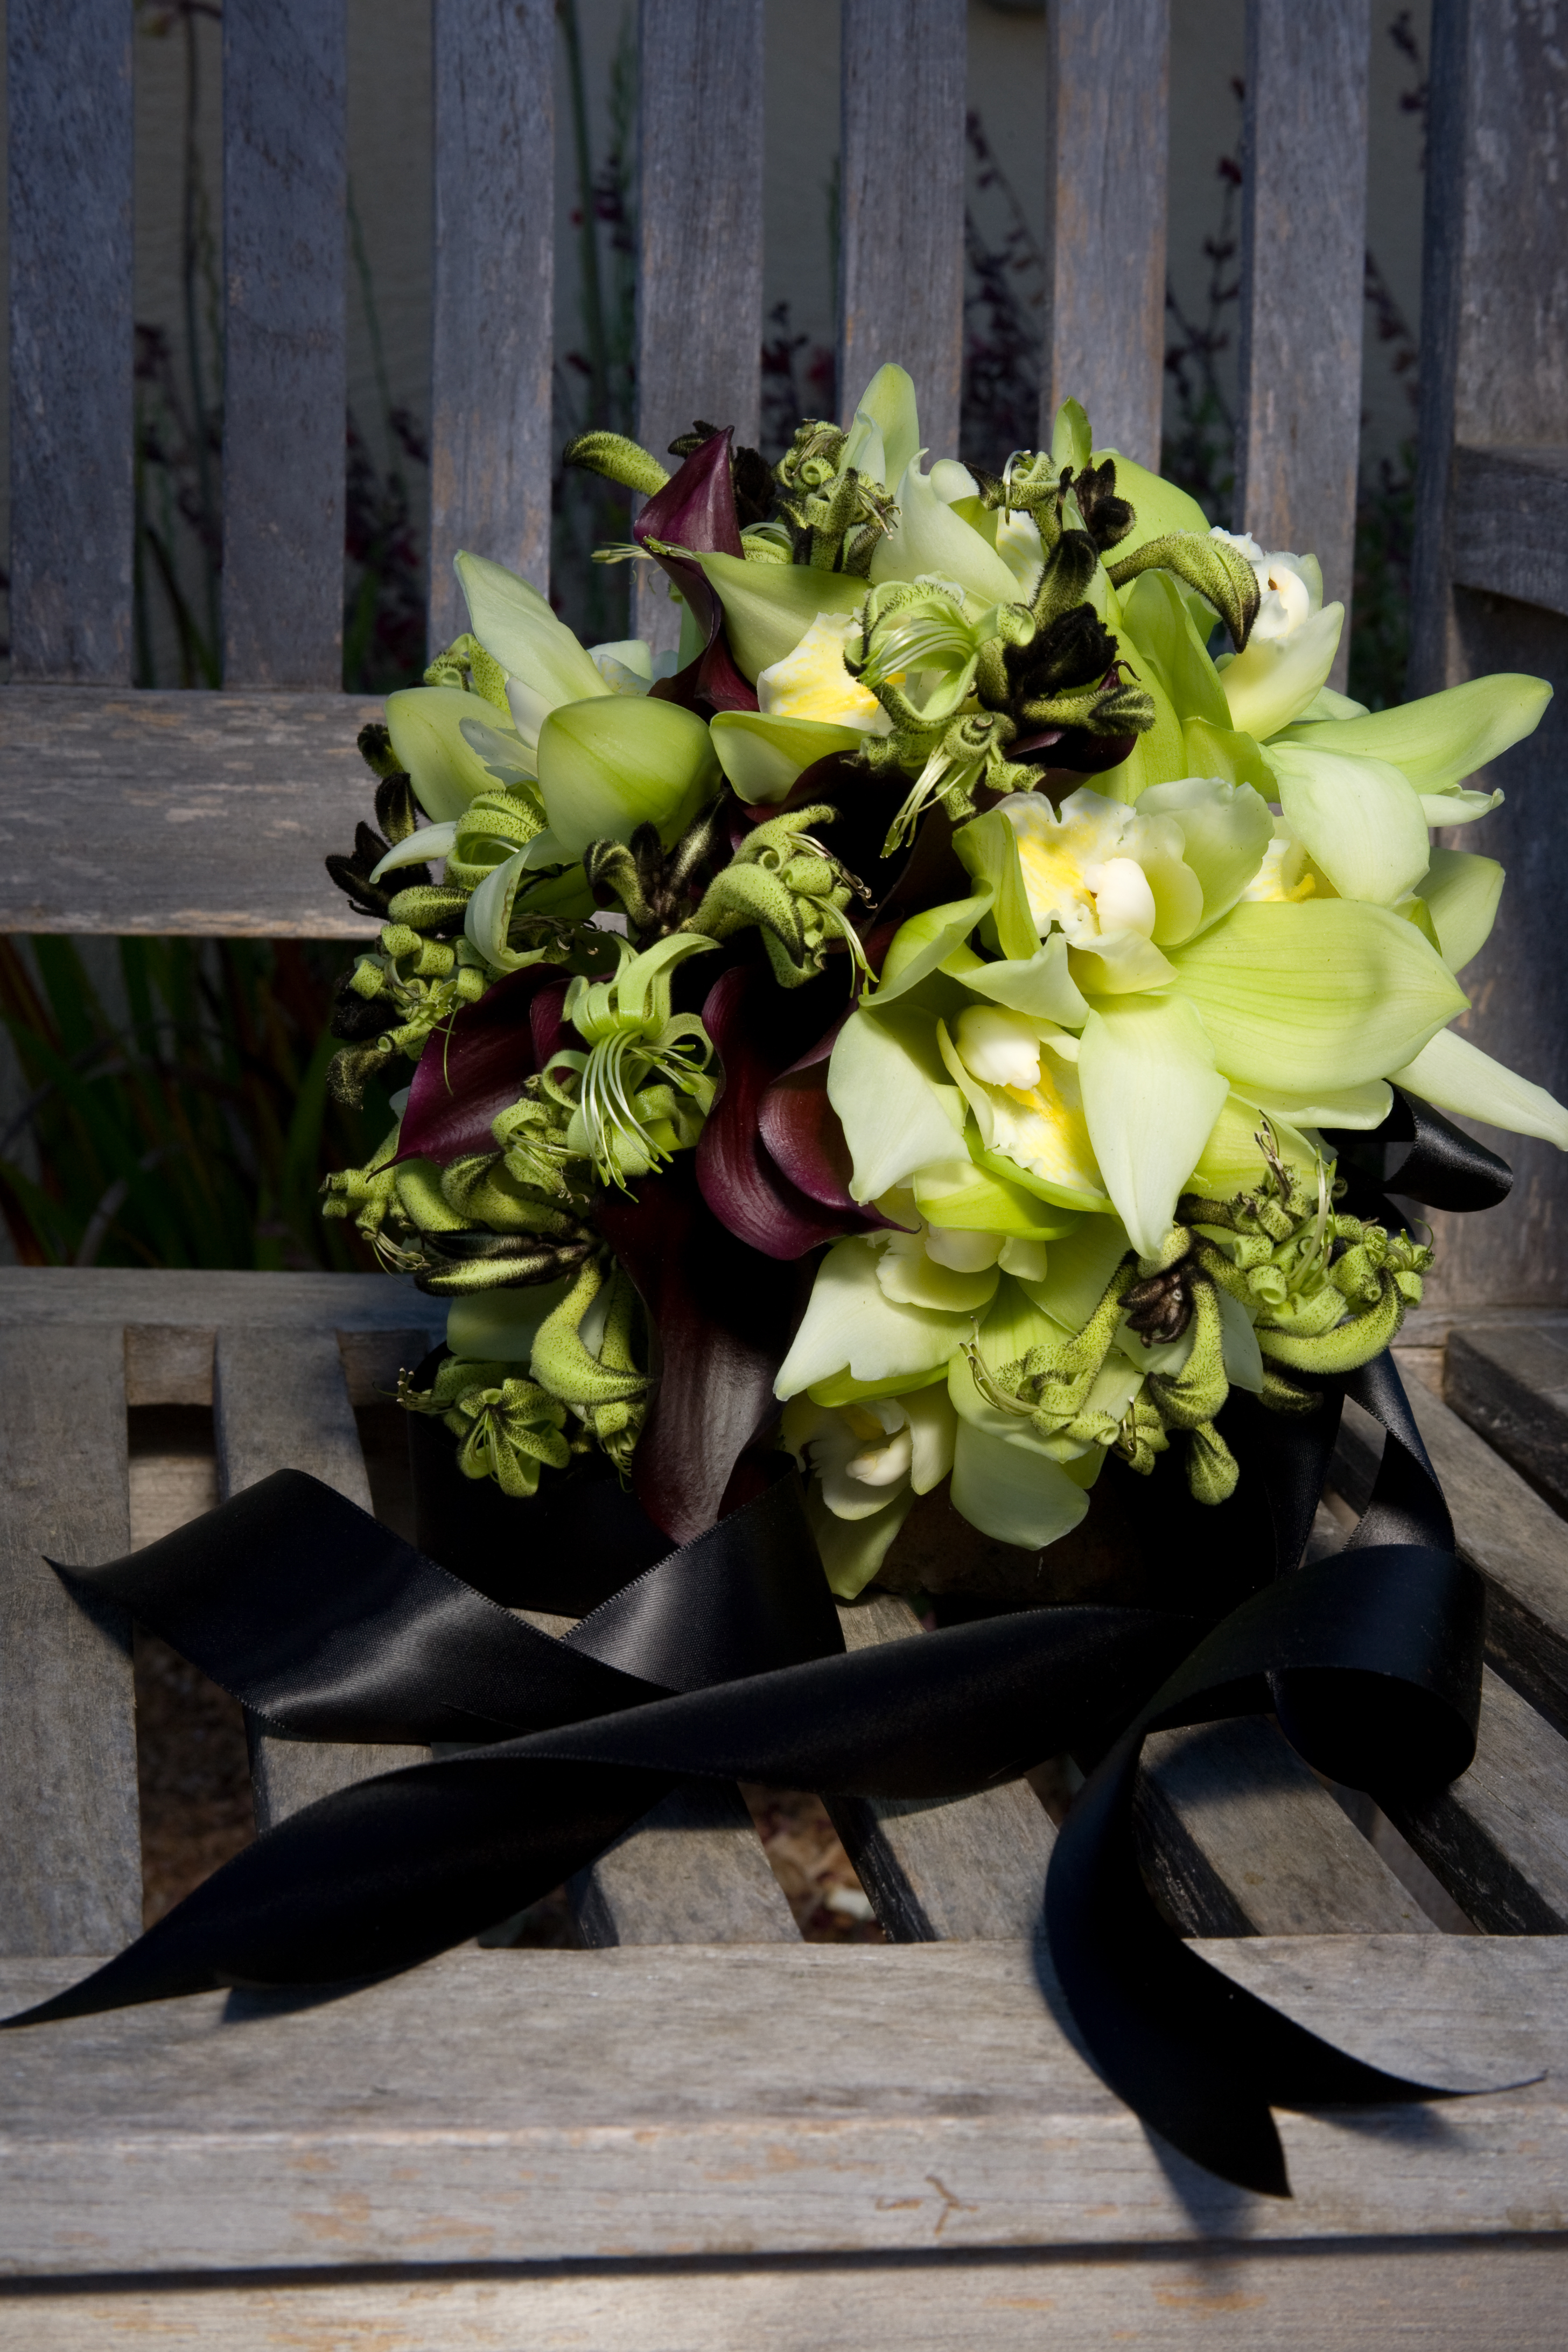 Bridal Bouquet Of Handwired Green Cymbidium Orchids Kangaroo Paw And Dark Purple Calla Lilies